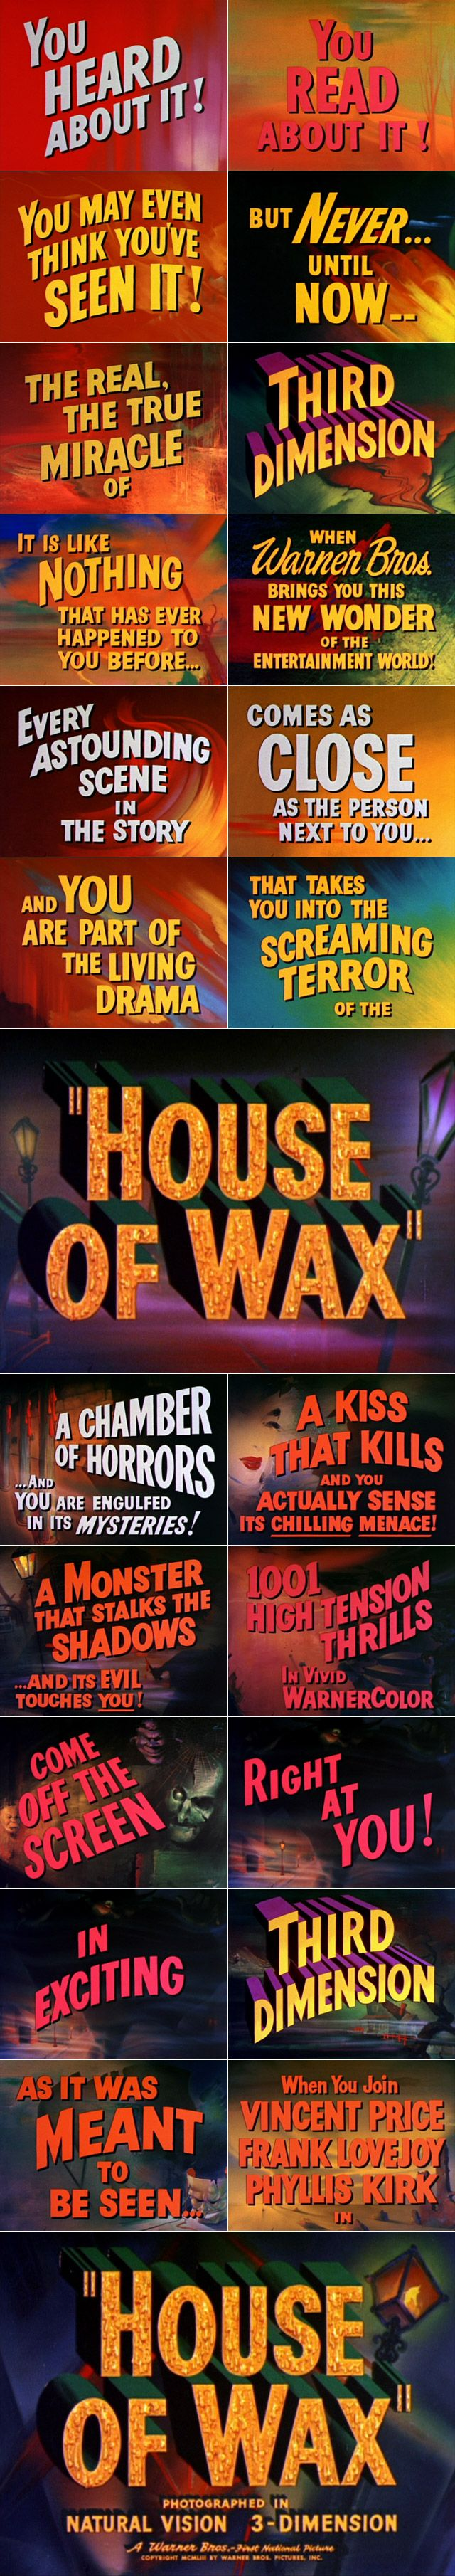 House of Wax (1953) trailer typography – the Movie title stills collection     ✇ 'HOUSE OF WAX' (1953), directed by André De Toth, starring Vincent Price, Frank Lovejoy, Phyllis Kirk, Charles Bronson